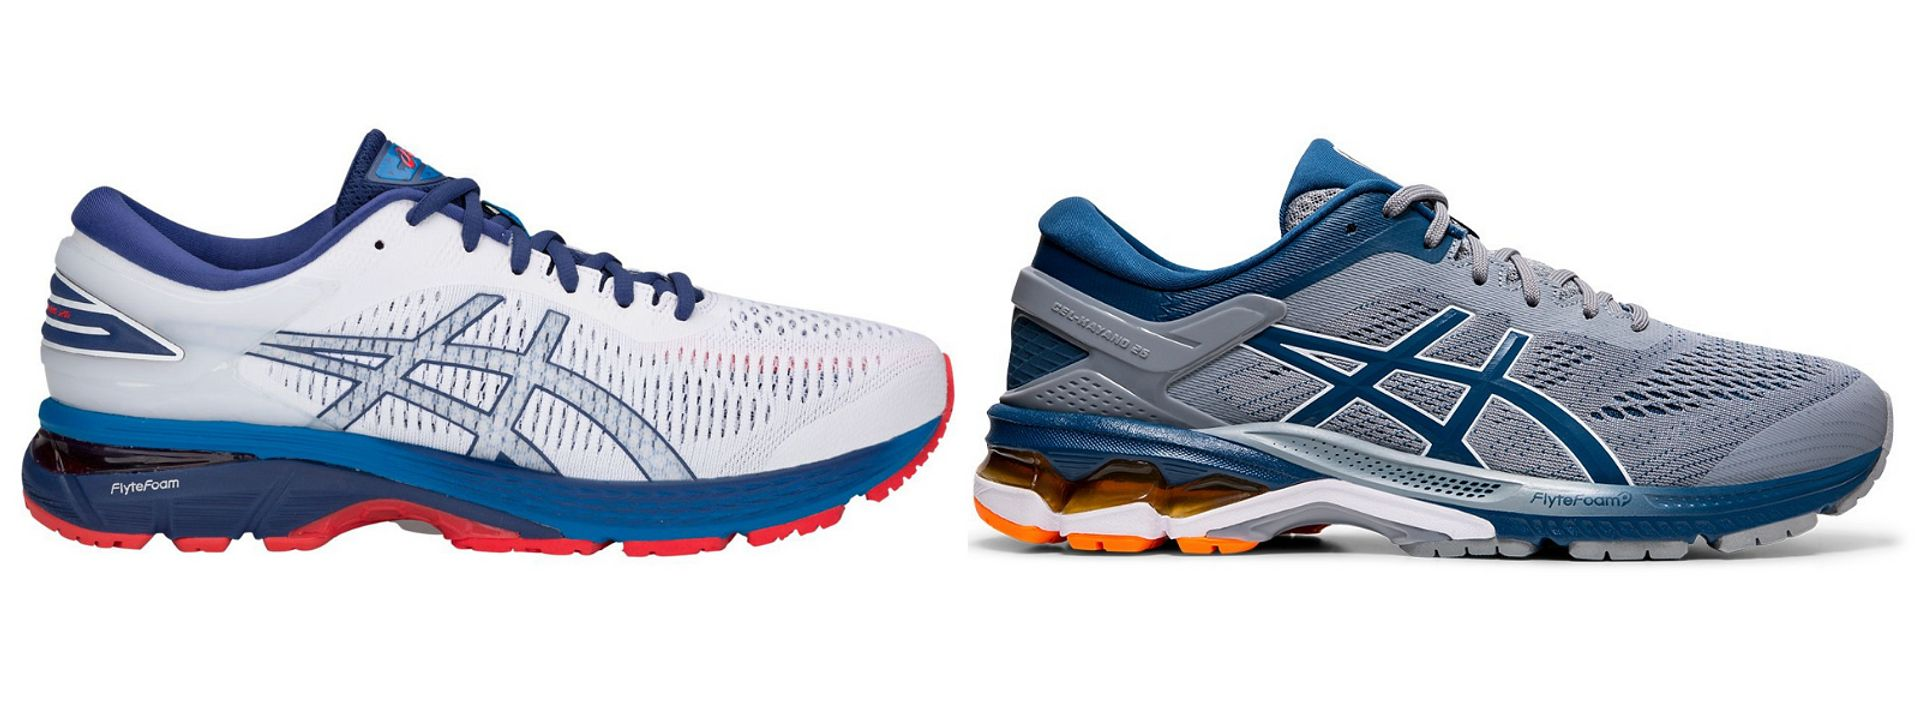 gel kayano 24 vs 25